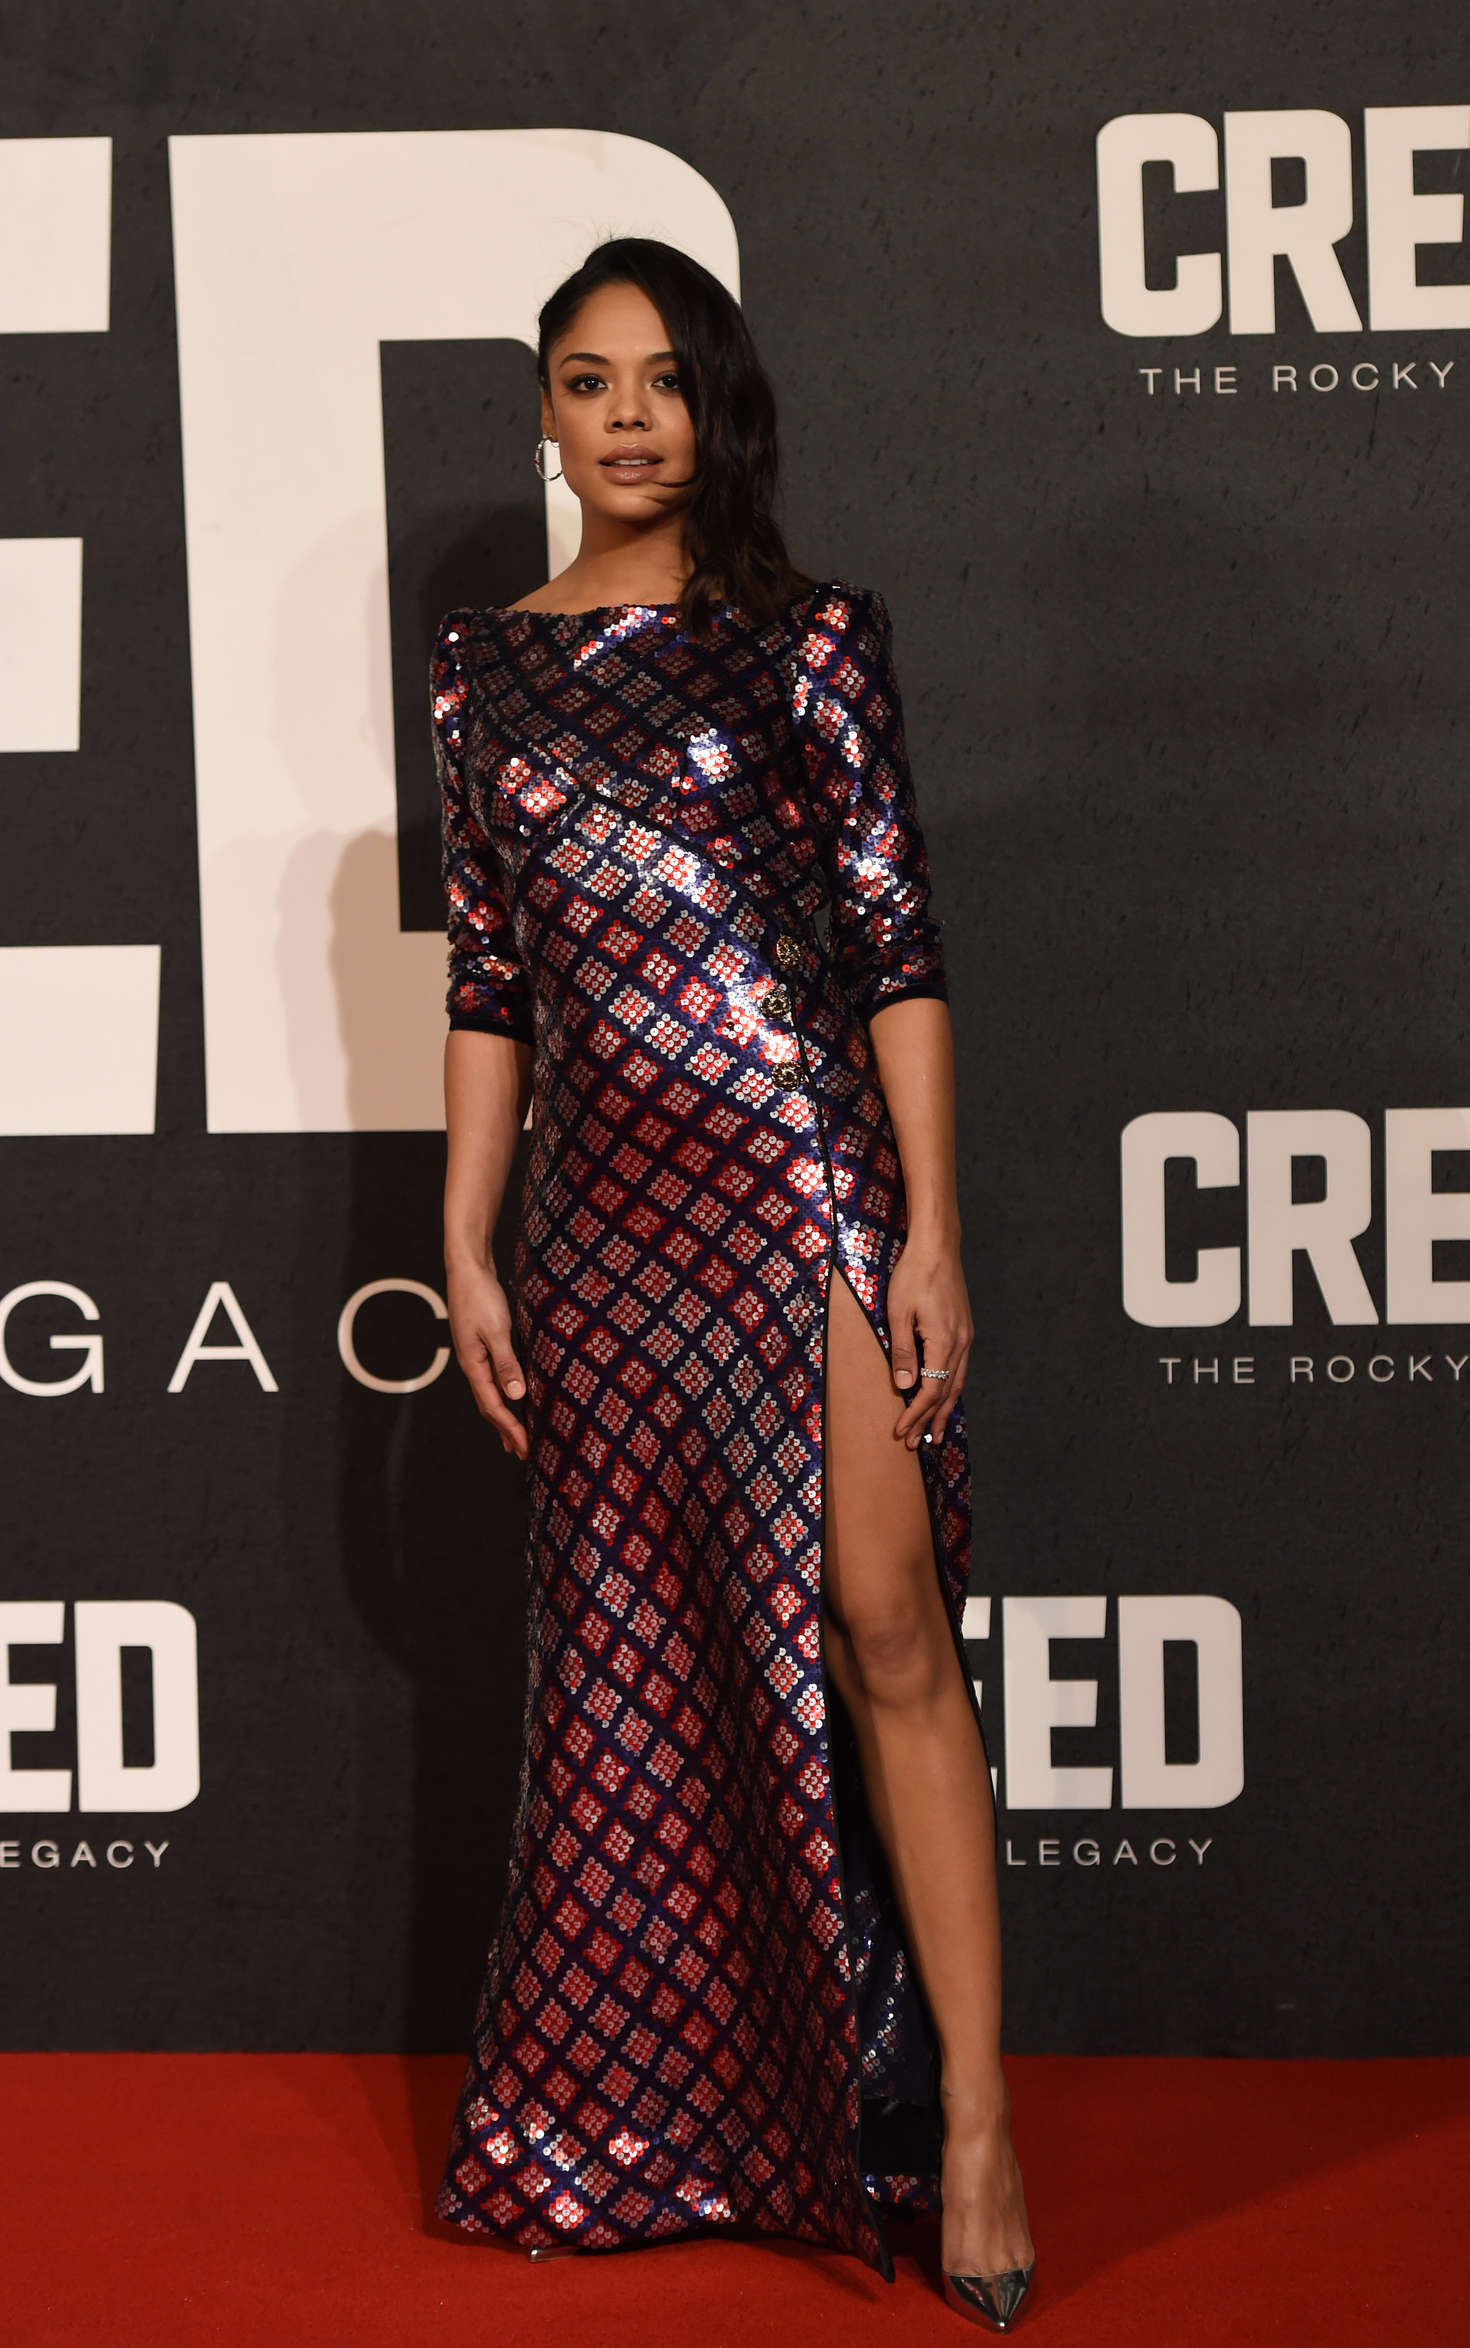 Tessa Thompson Creed Premiere in London